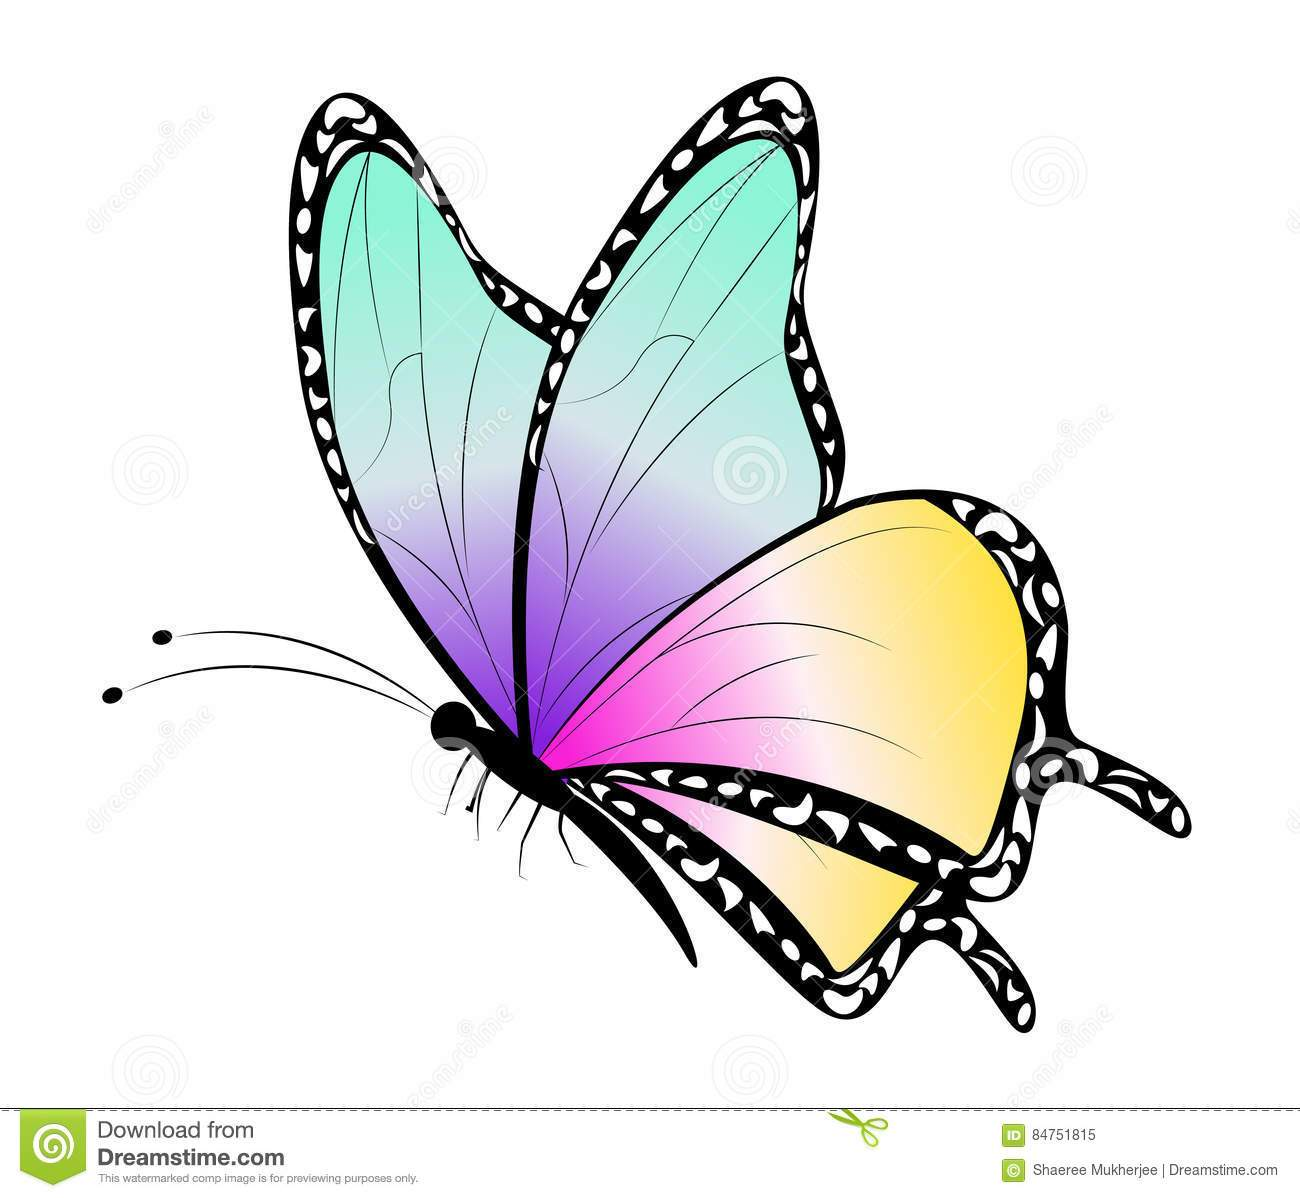 Flying butterfly clipart » Clipart Portal.